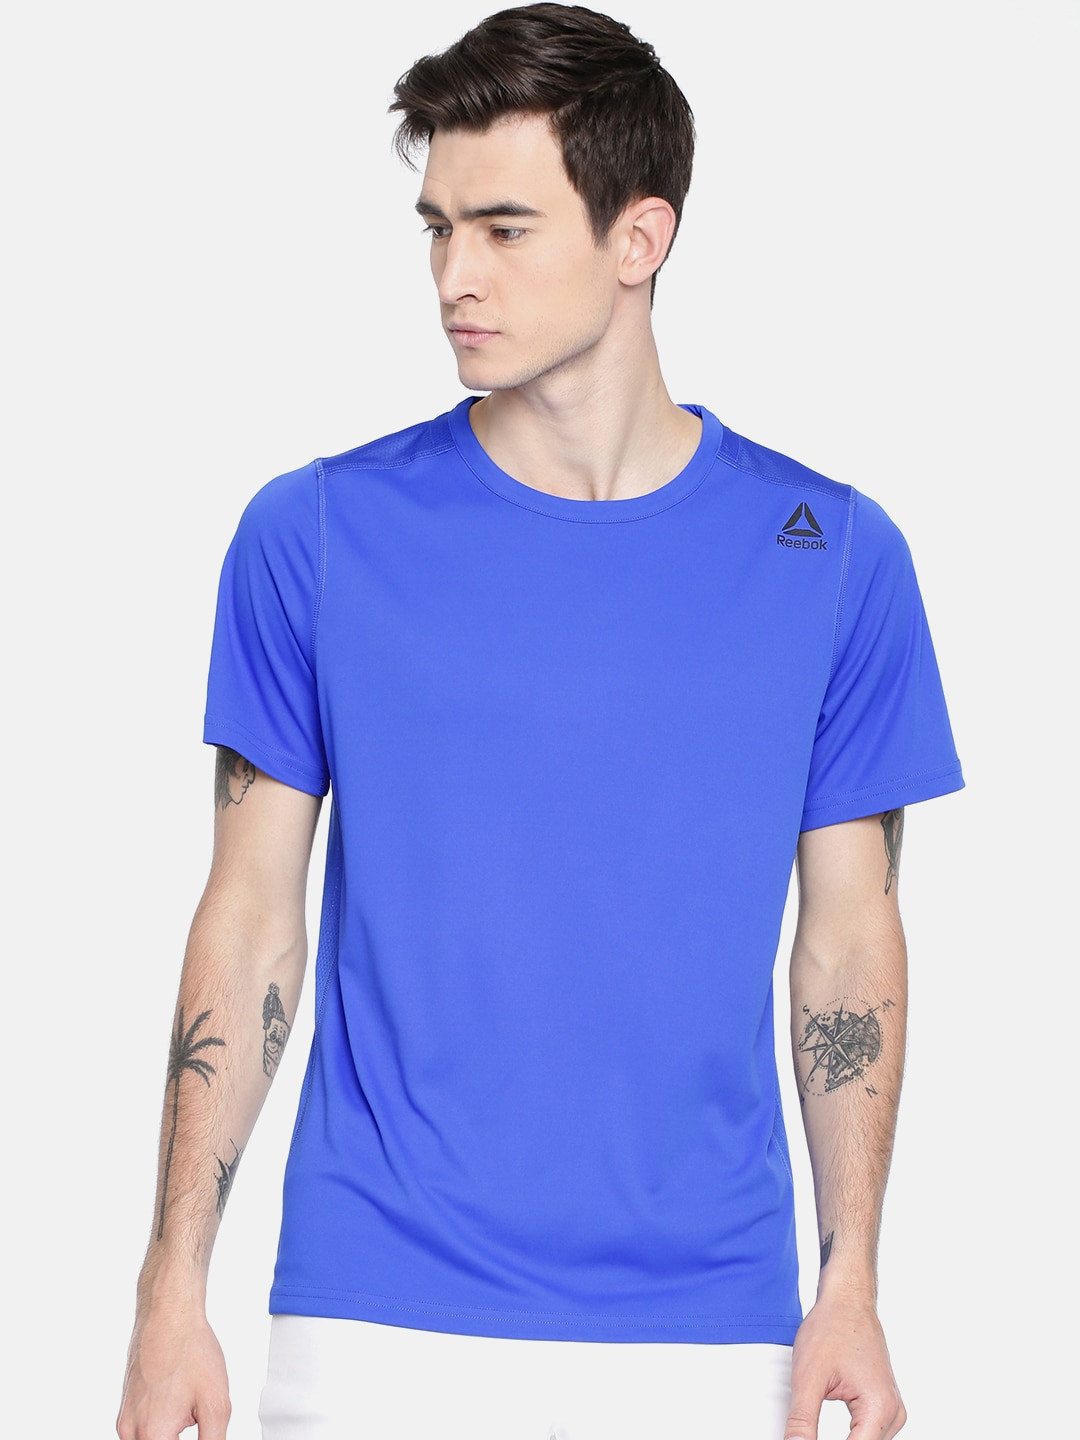 6d1918a869 Reebok Men Blue Solid US WOR TECH SS T-shirt